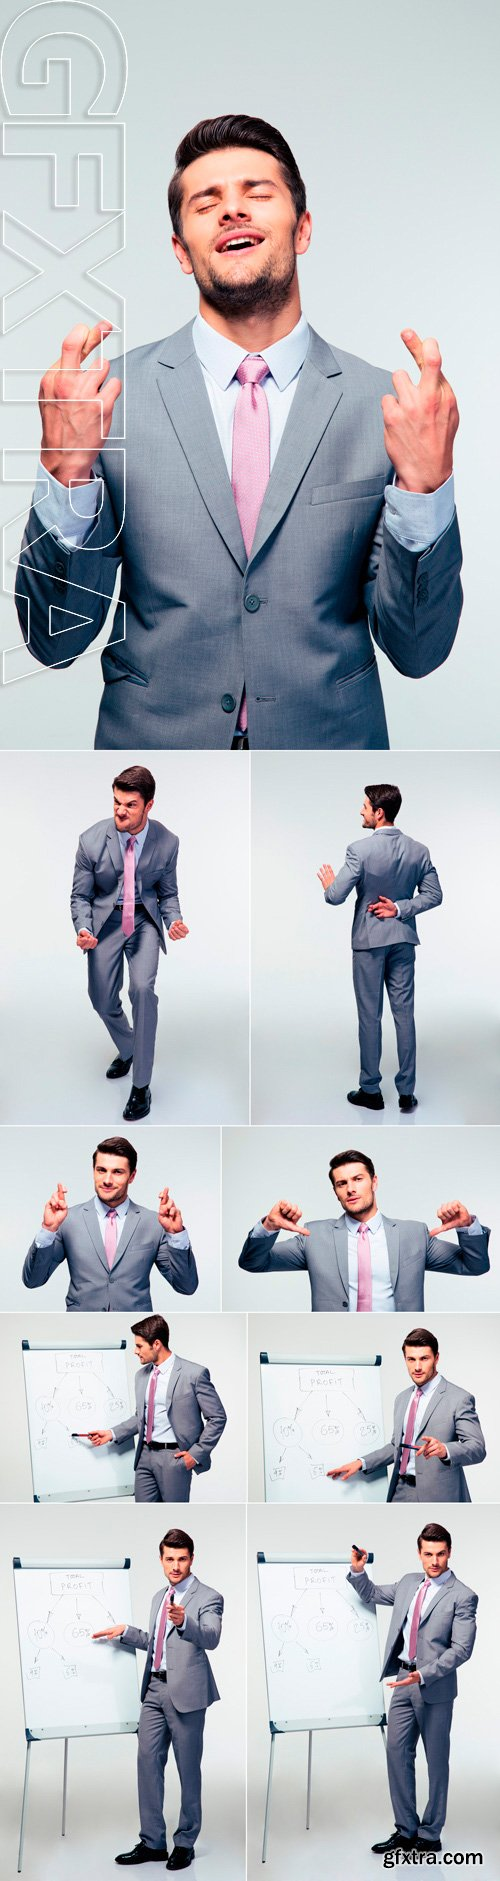 Stock Photos - Handsome businessman over gray background